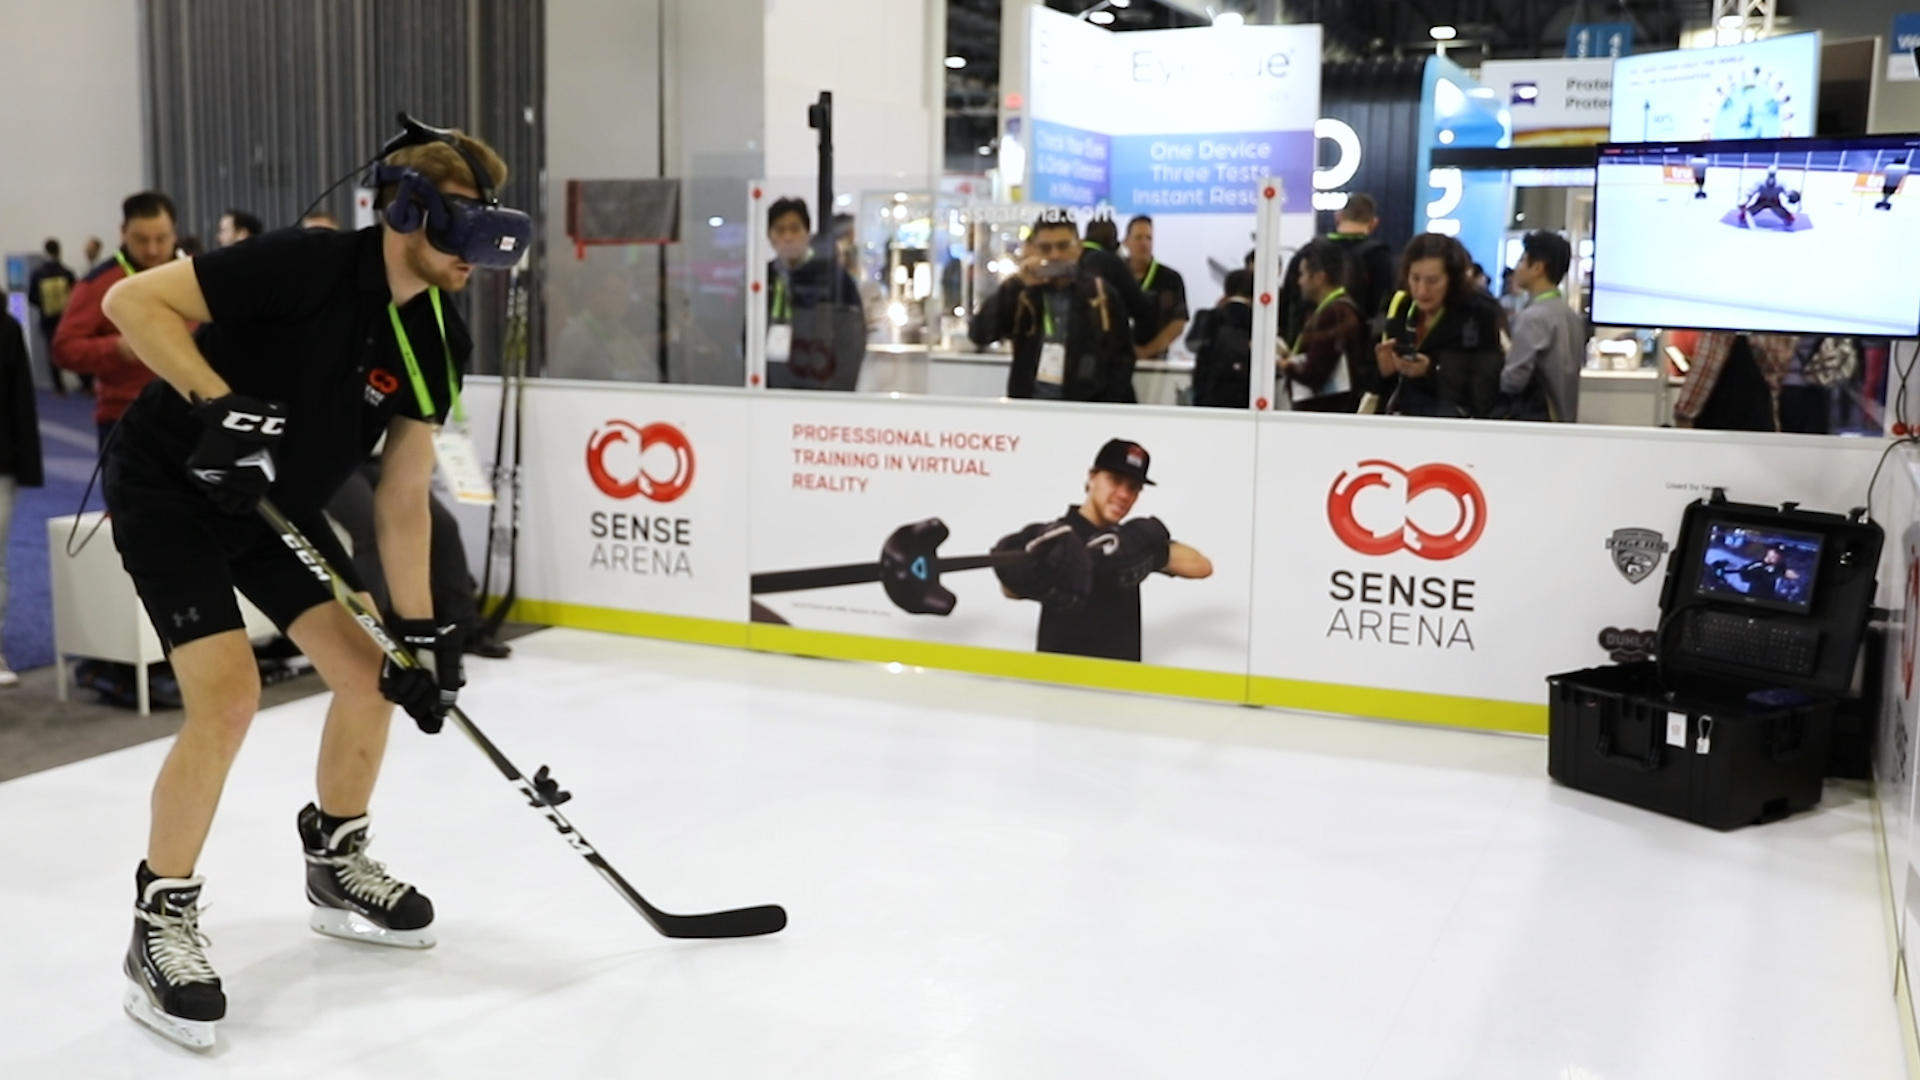 Video: CES 2019: Can VR hockey make you a smarter player?